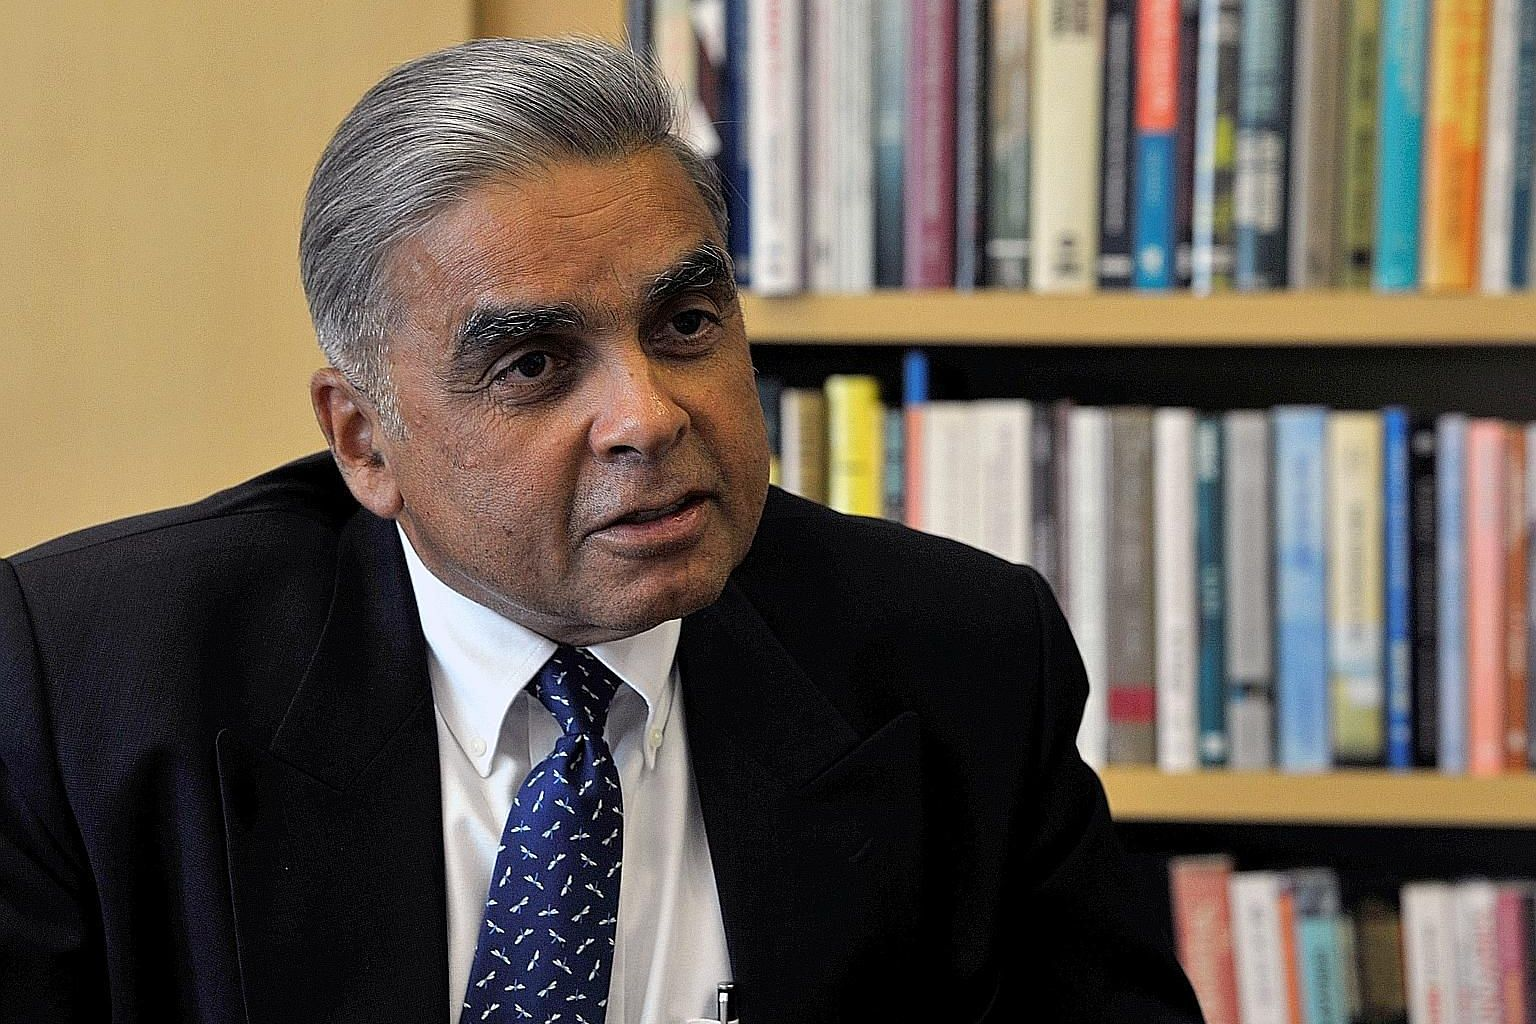 Prof Mahbubani had continued his regular 8km runs despite having severe chest pains this year. He also put off seeing a doctor.